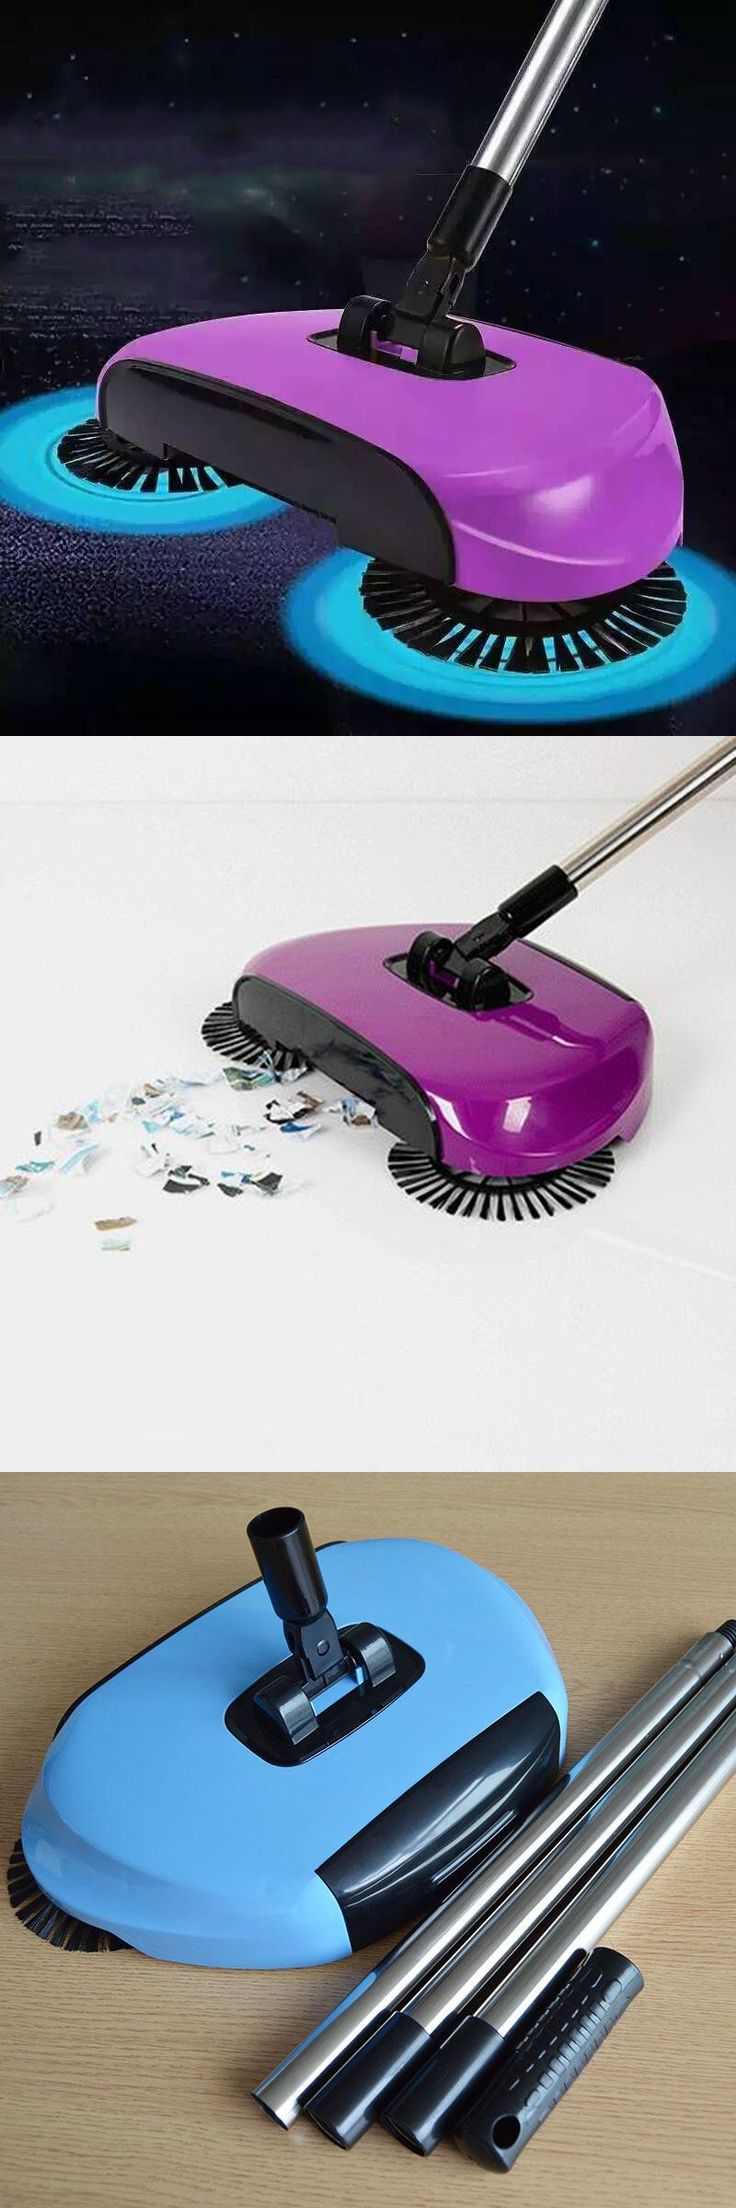 [Visit to Buy] 2017 Sweeping Machine Push Type Magic Broom Convenient Sweeper Dustpan Hand Vacuum Floor Robotic Vacuum Cleaner Automatic Home #Advertisement